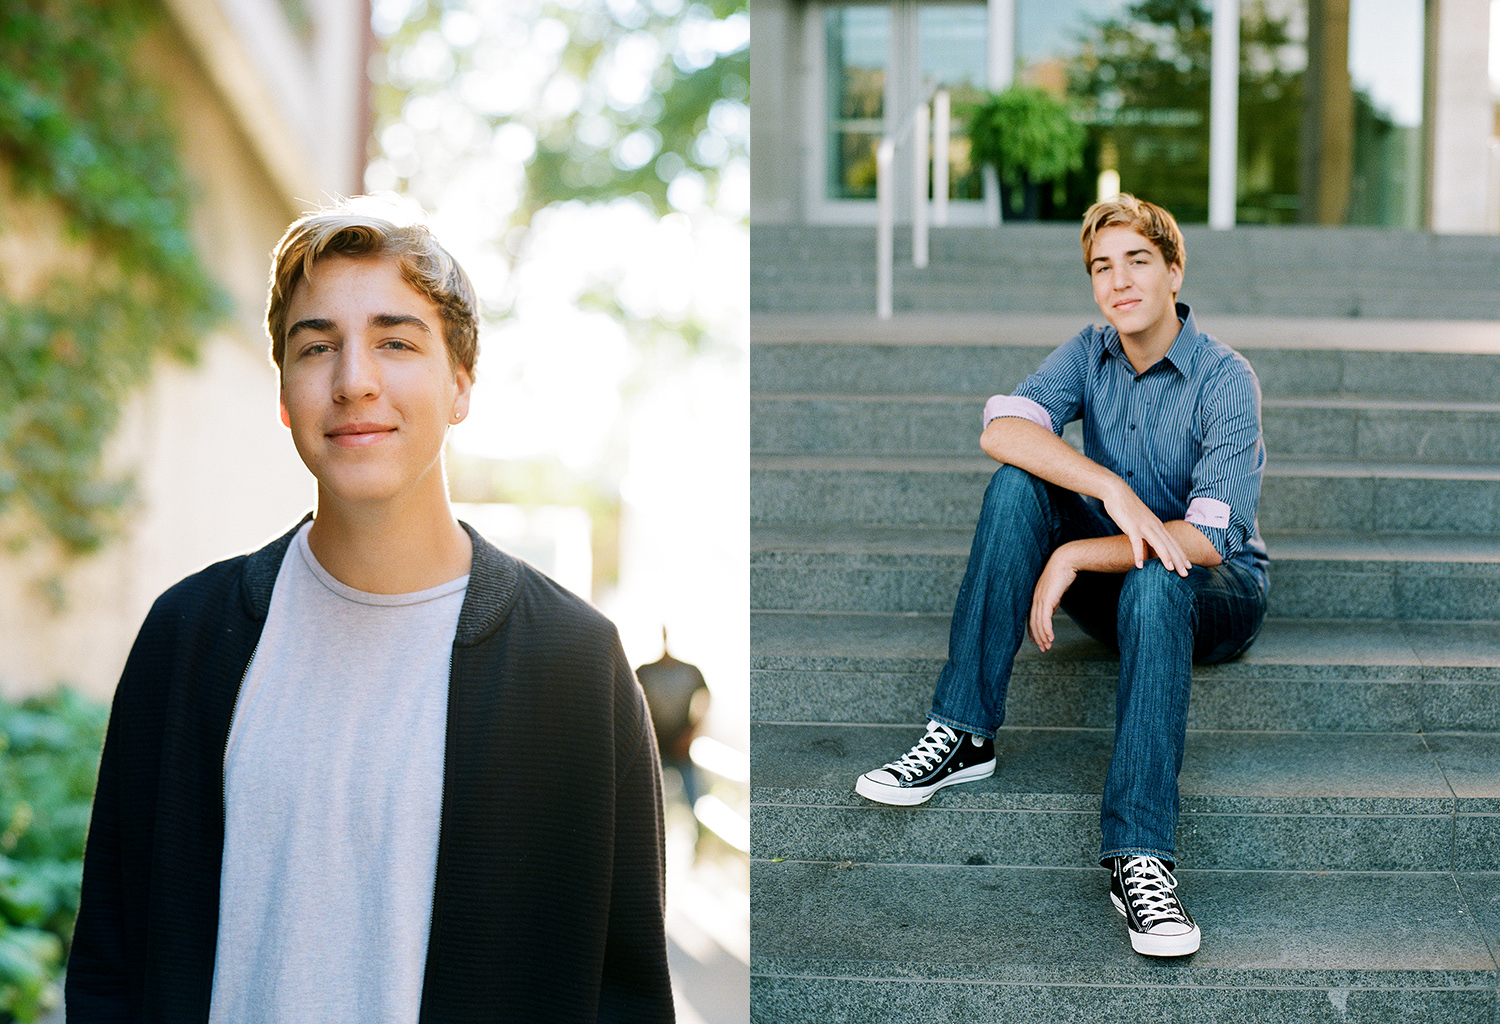 East Grand Rapids High School senior portrait photographer